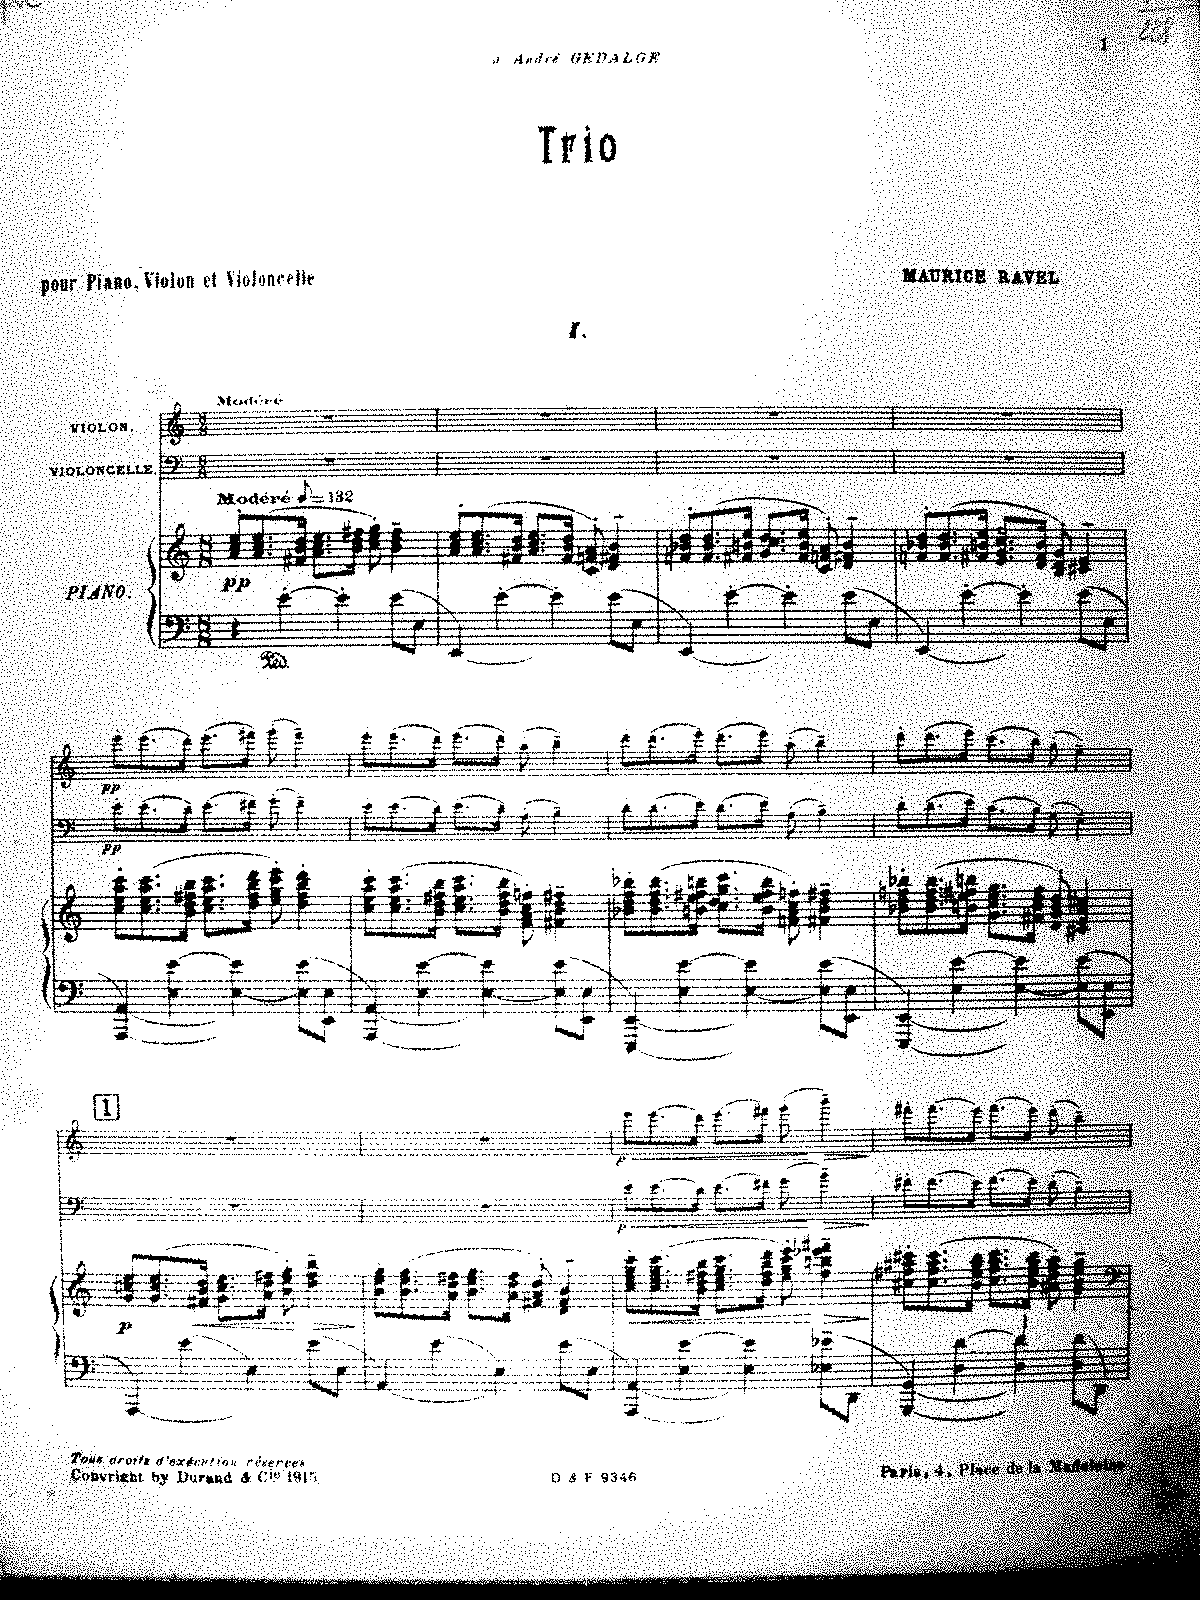 Ravel - Piano Trio (score, color).pdf